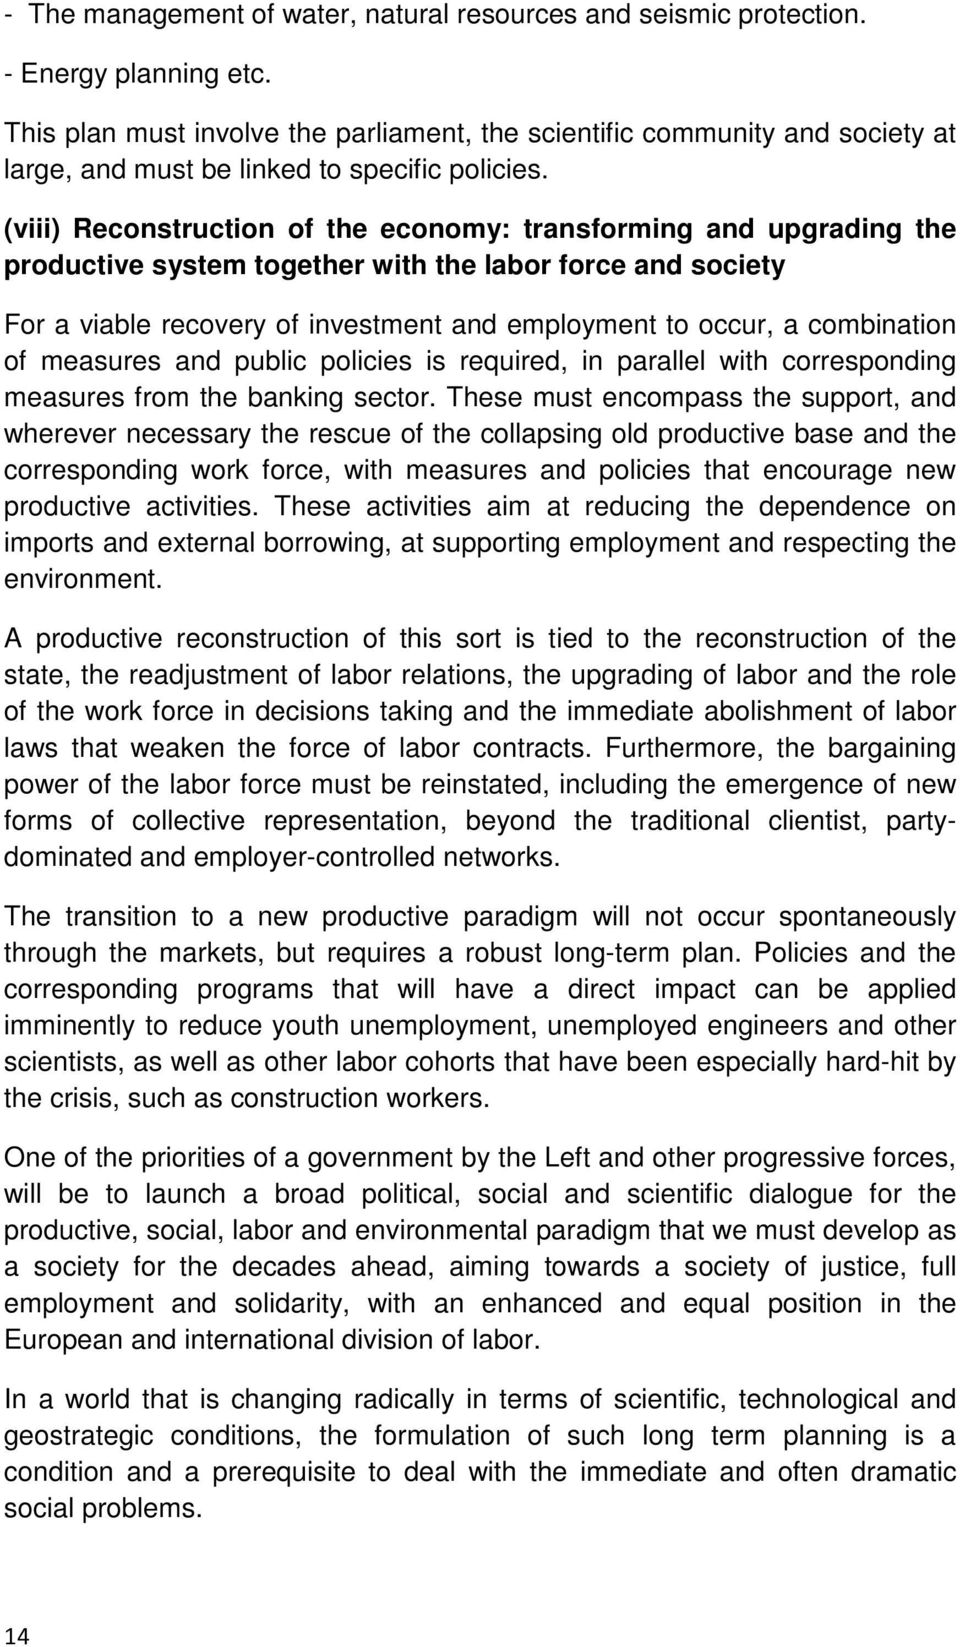 (viii) Reconstruction of the economy: transforming and upgrading the productive system together with the labor force and society For a viable recovery of investment and employment to occur, a